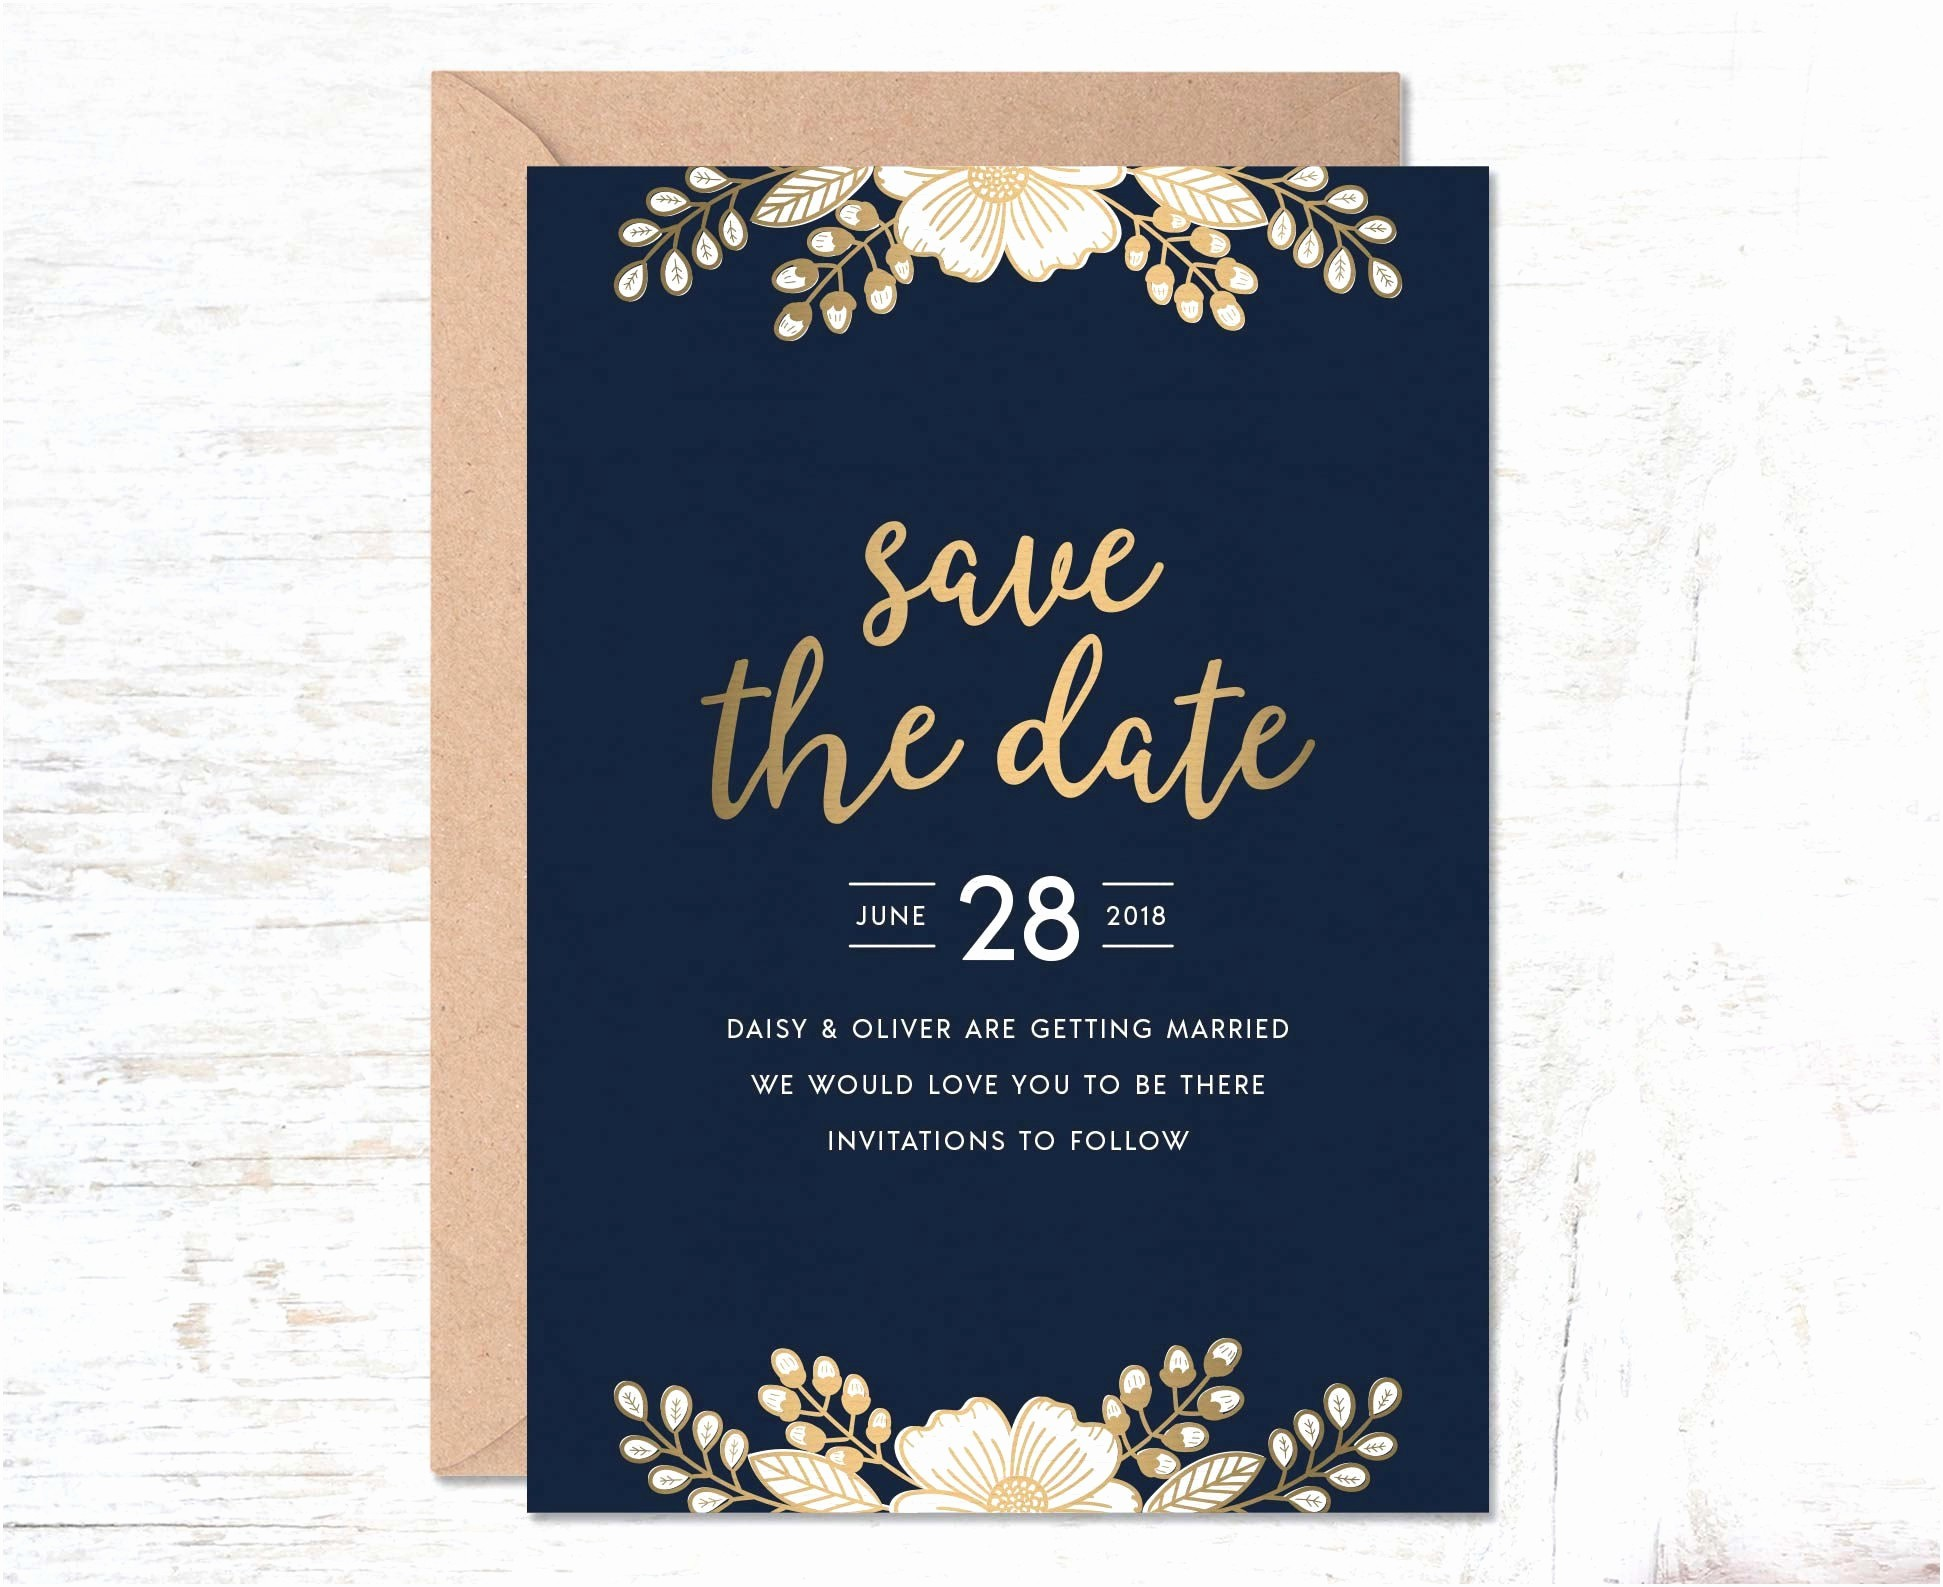 Blue and Gold Invitation Template New Free Blue and Gold Invitation Templates List Free